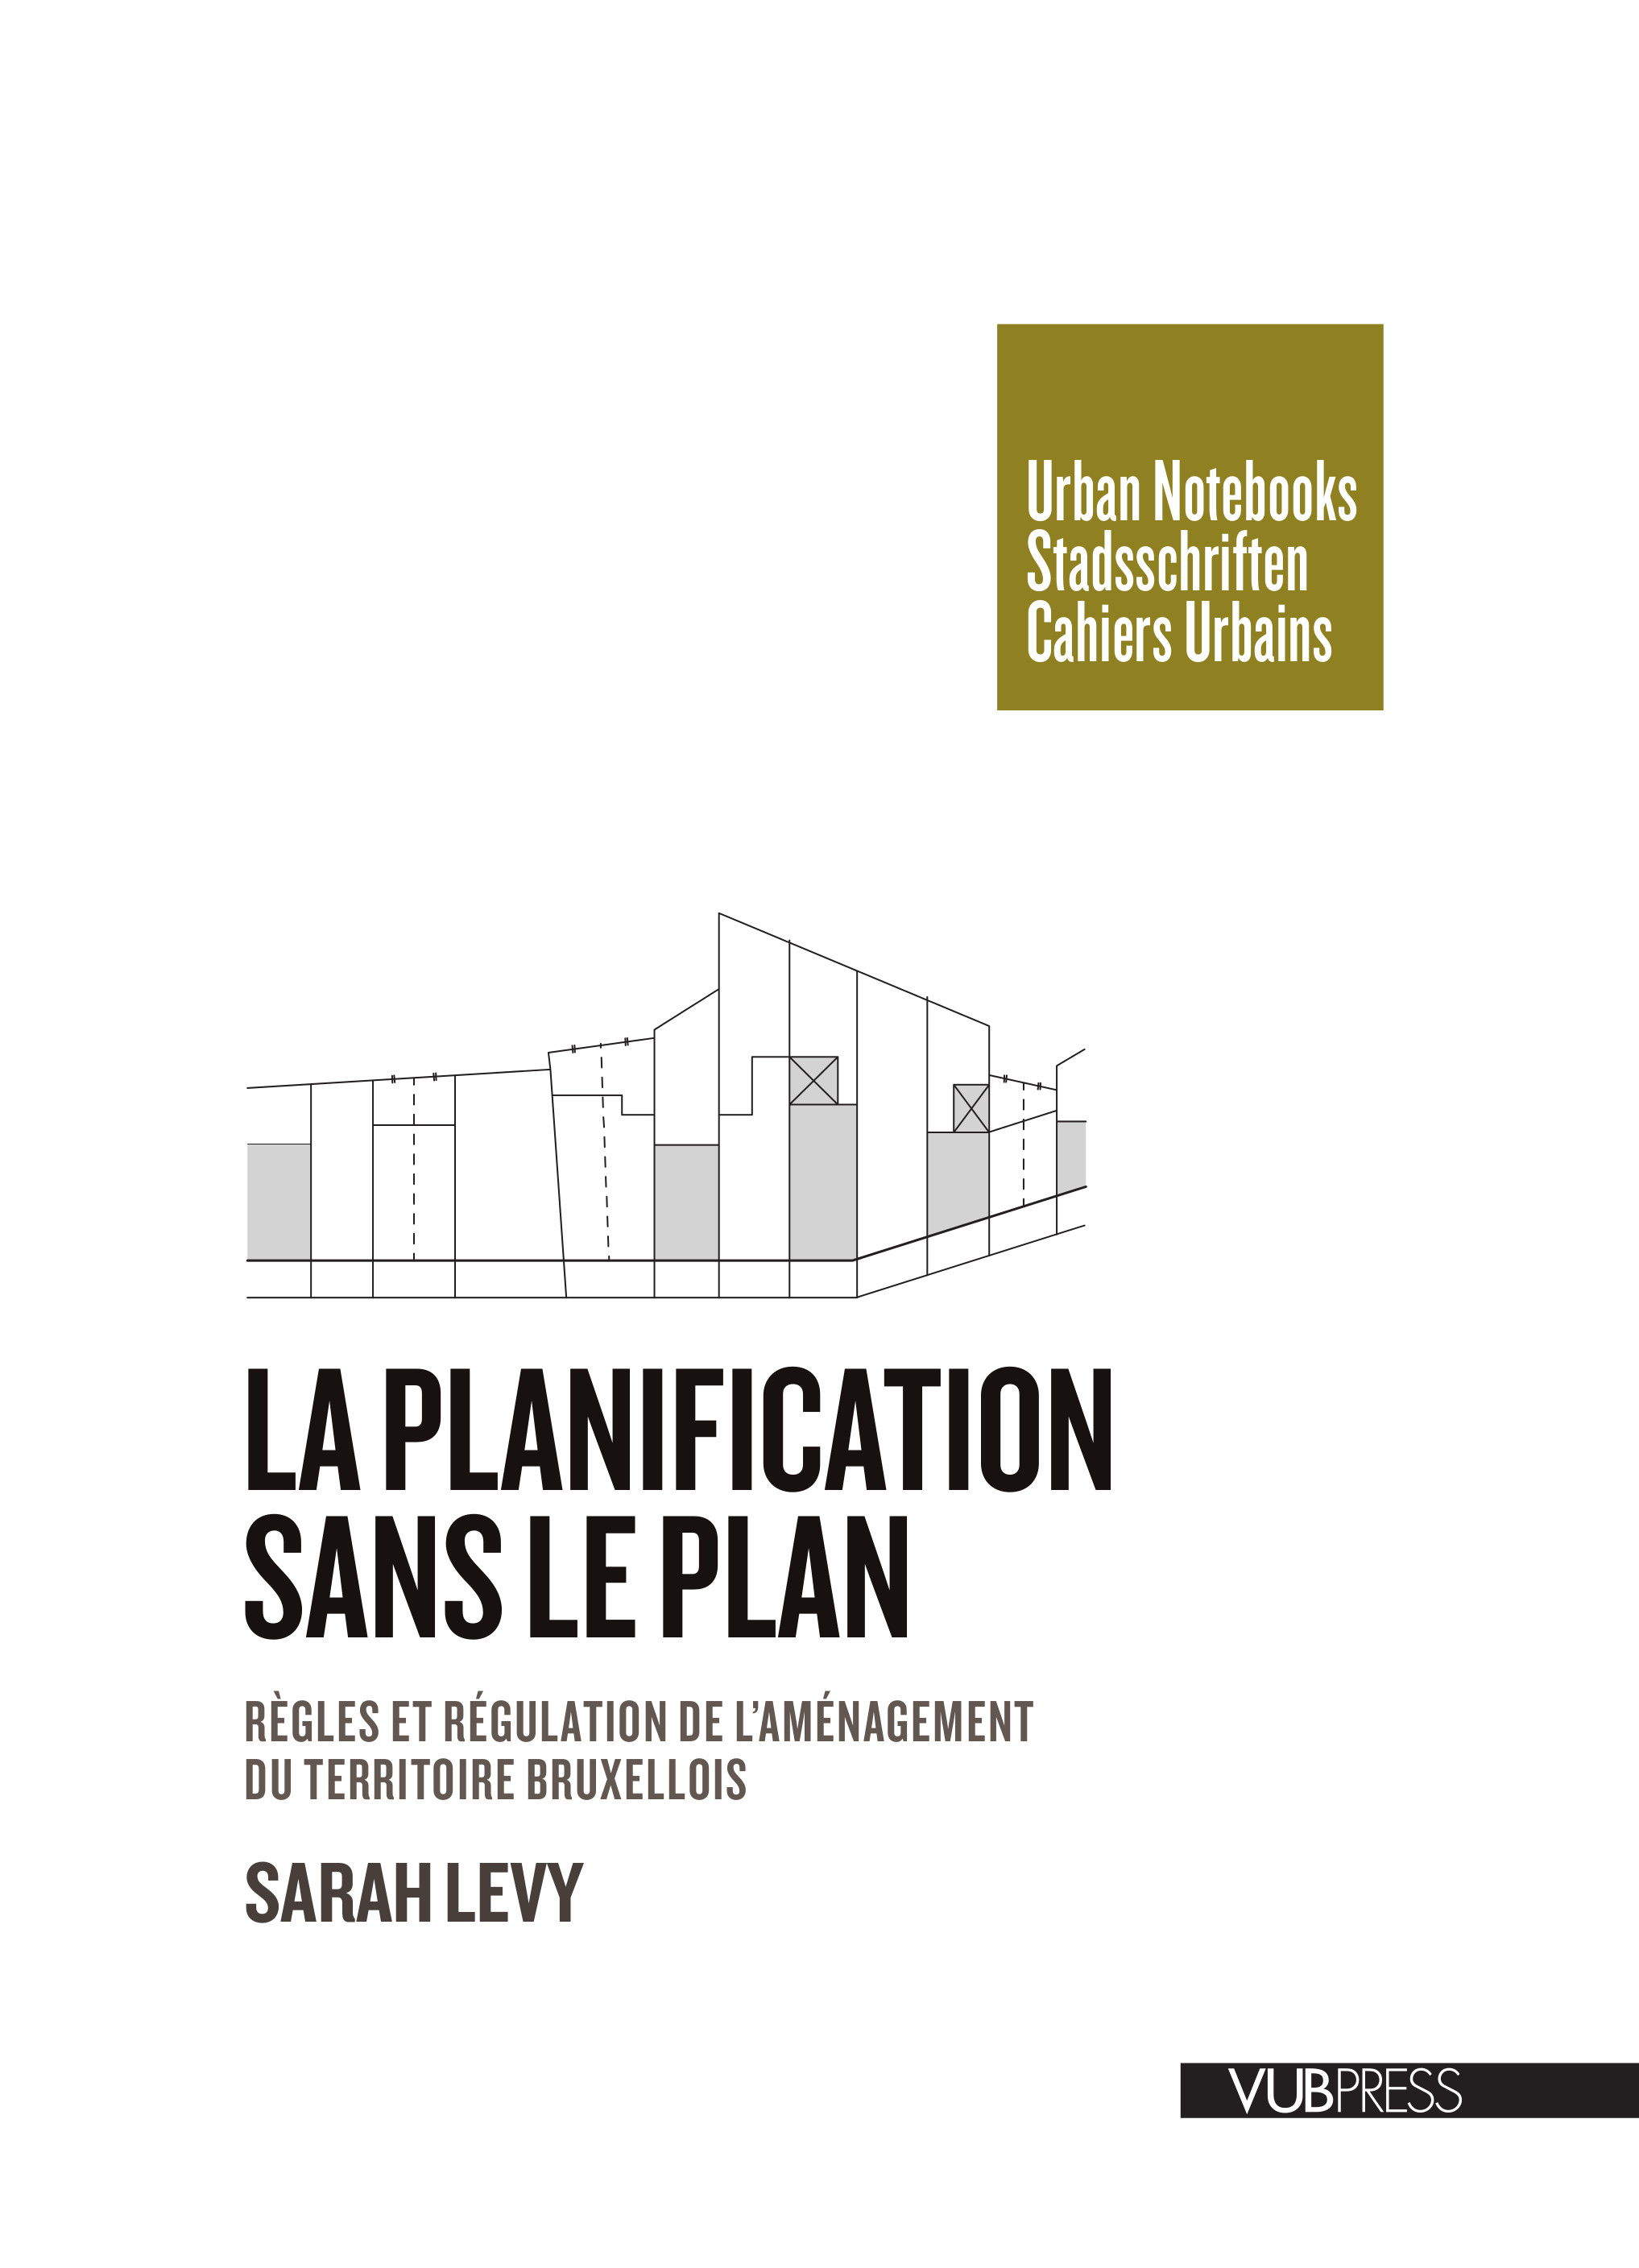 LA PLANIFICATION SANS LE PLAN